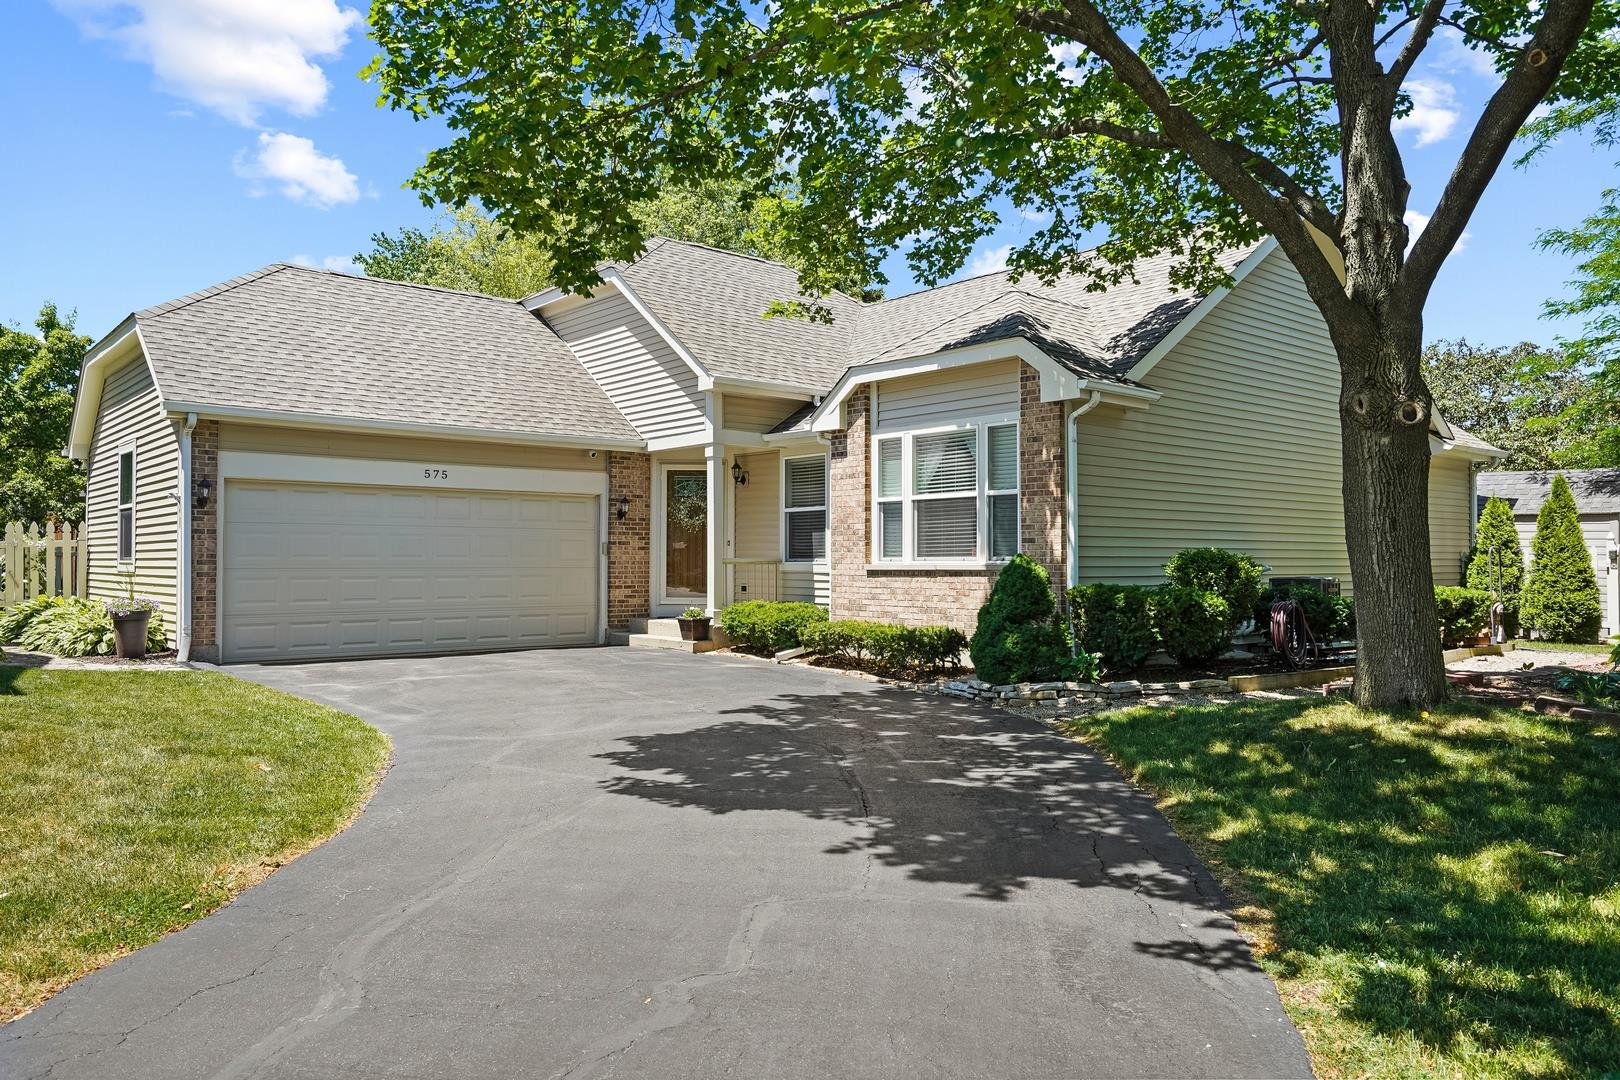 575 CRYSTAL SPRINGS Court, Lake Zurich, IL 60047 - #: 11179227